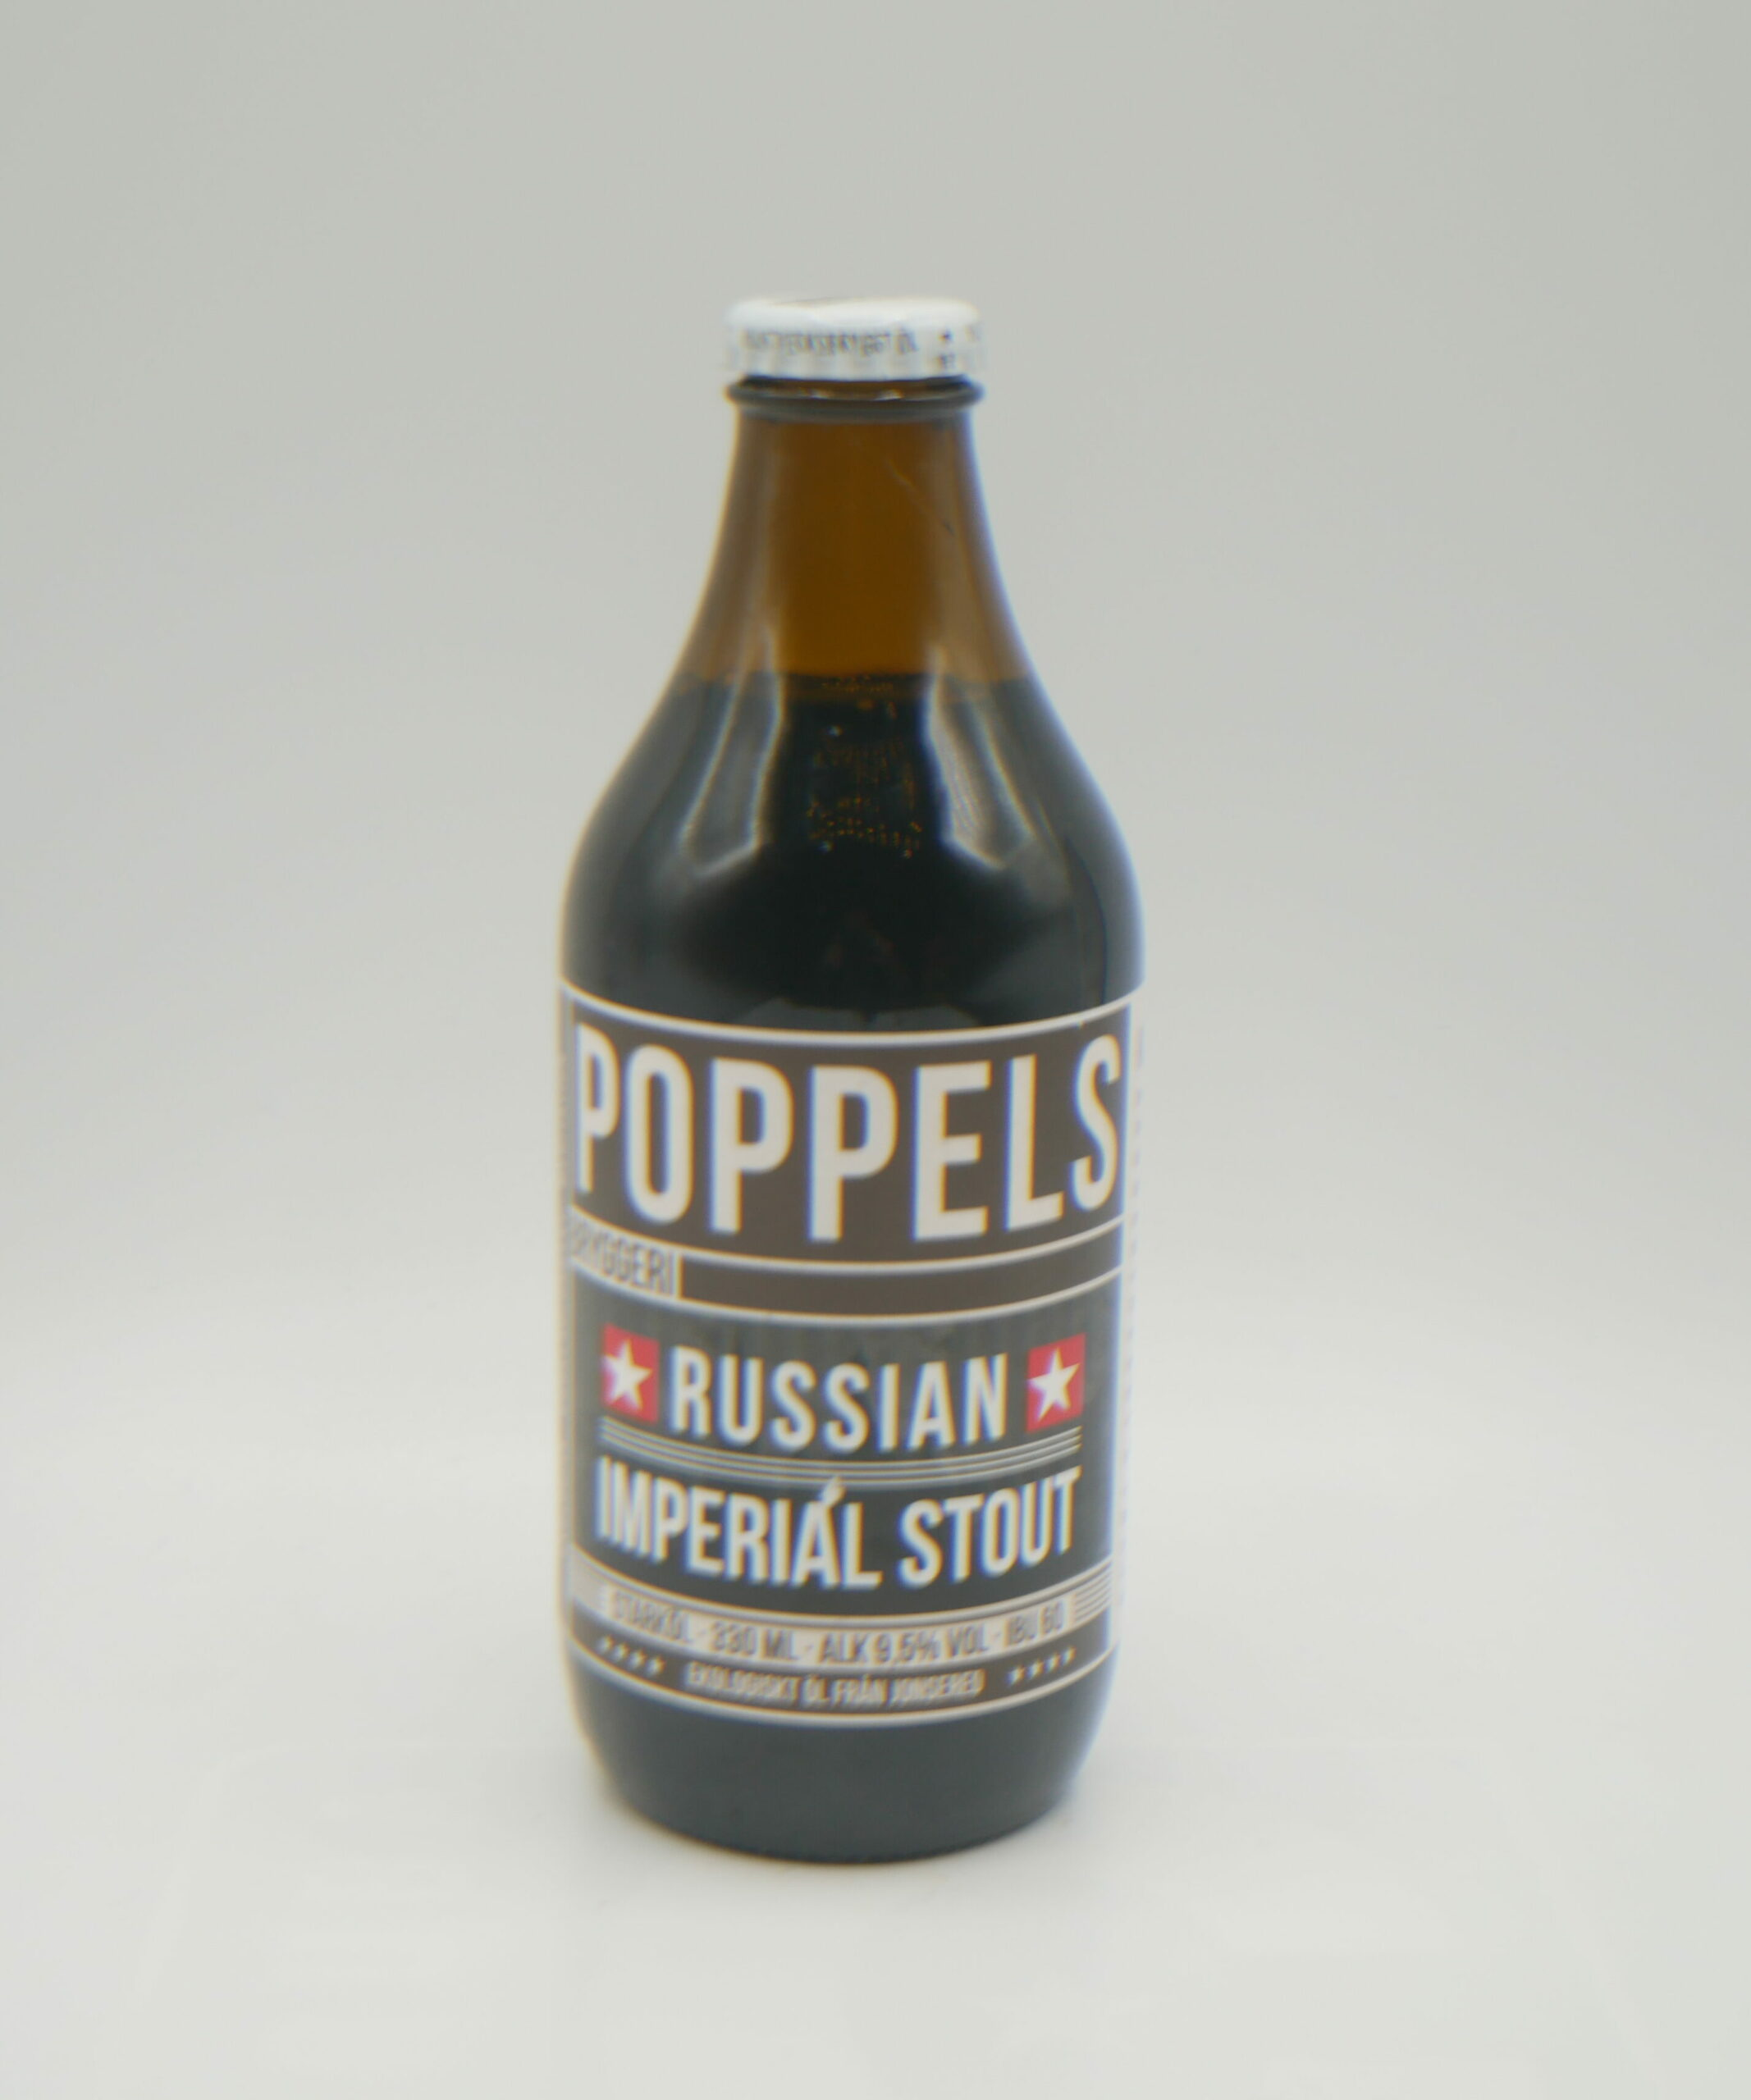 Image Poppels Imperial stout bbf 04122020